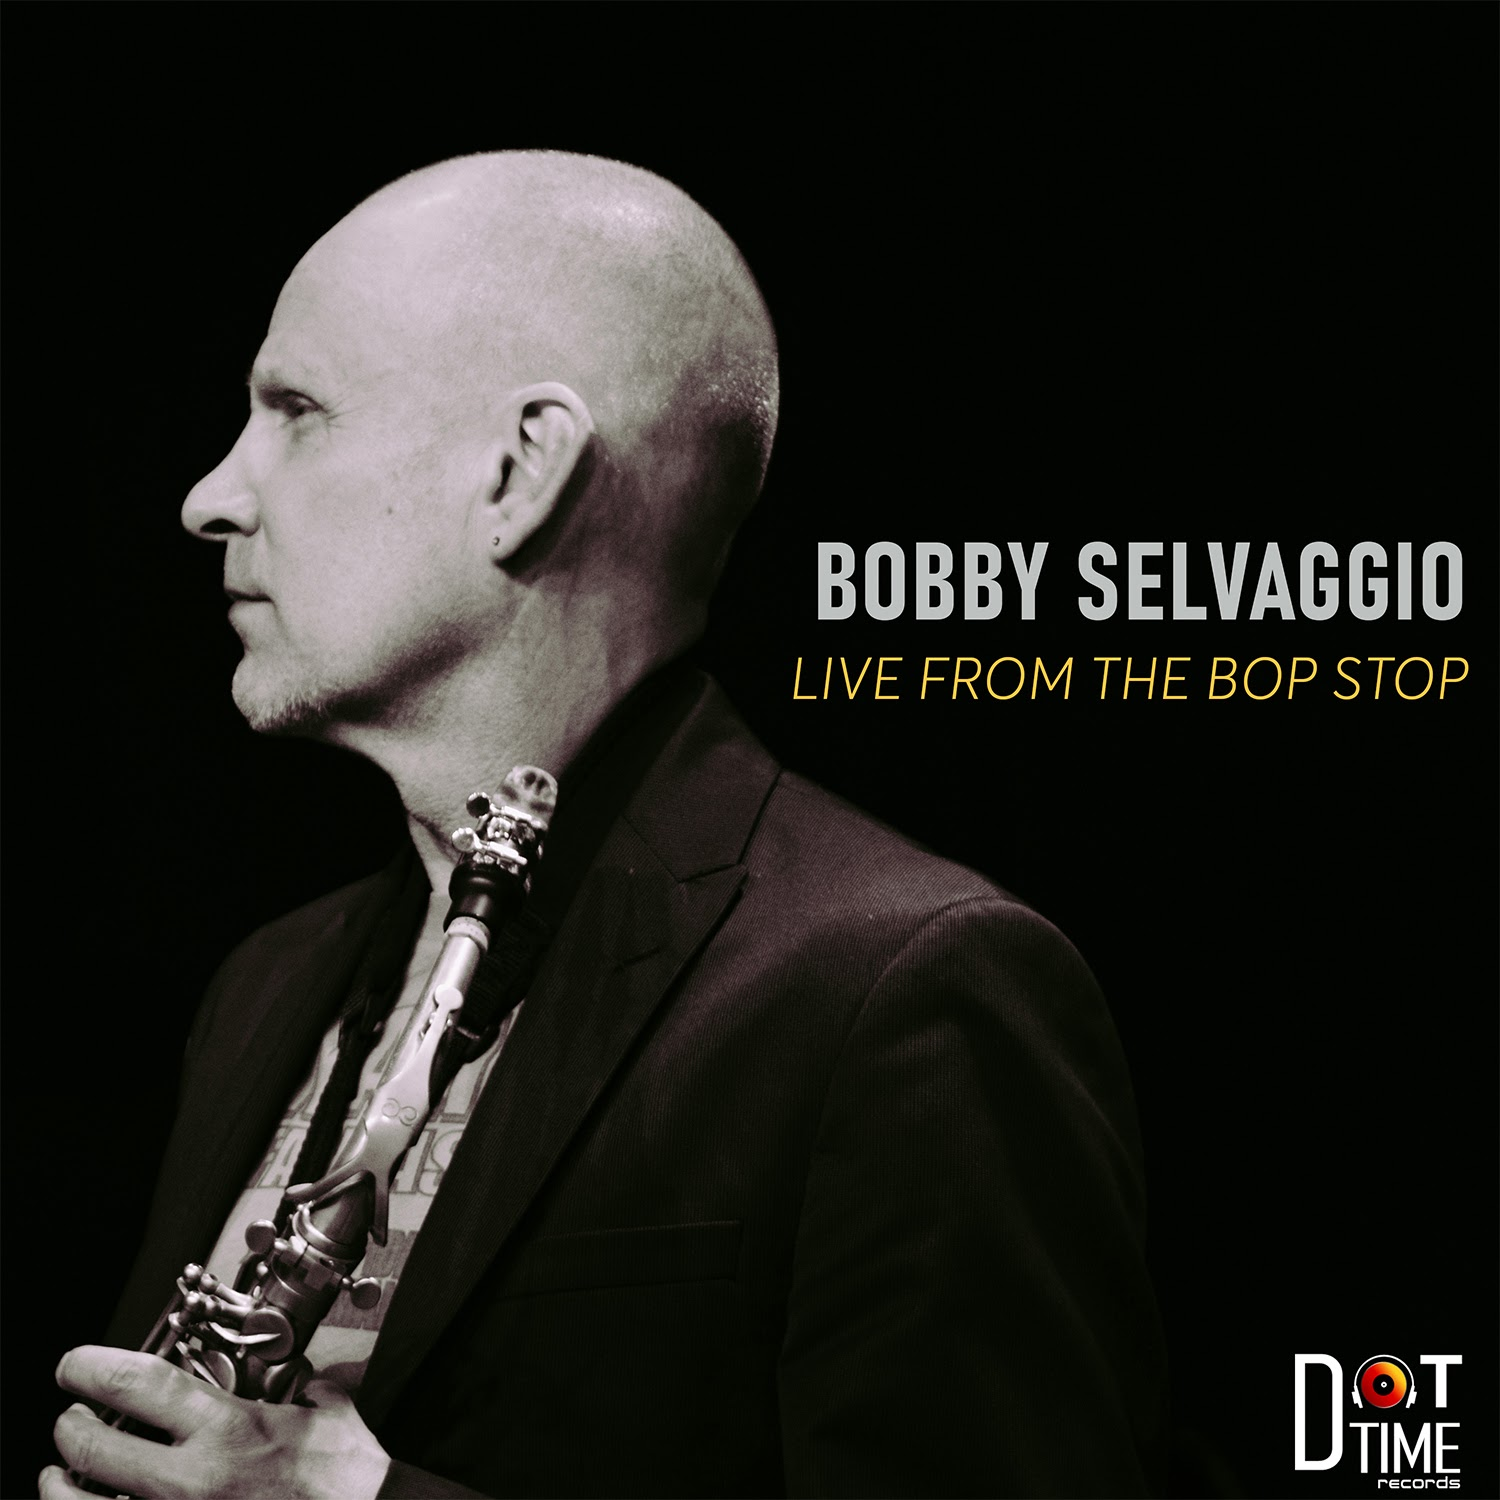 NEW RELEASE: Dot Time Recording Artist Bobby Selvaggio Set to Release 'Live From the Bop Stop', Out February 21st